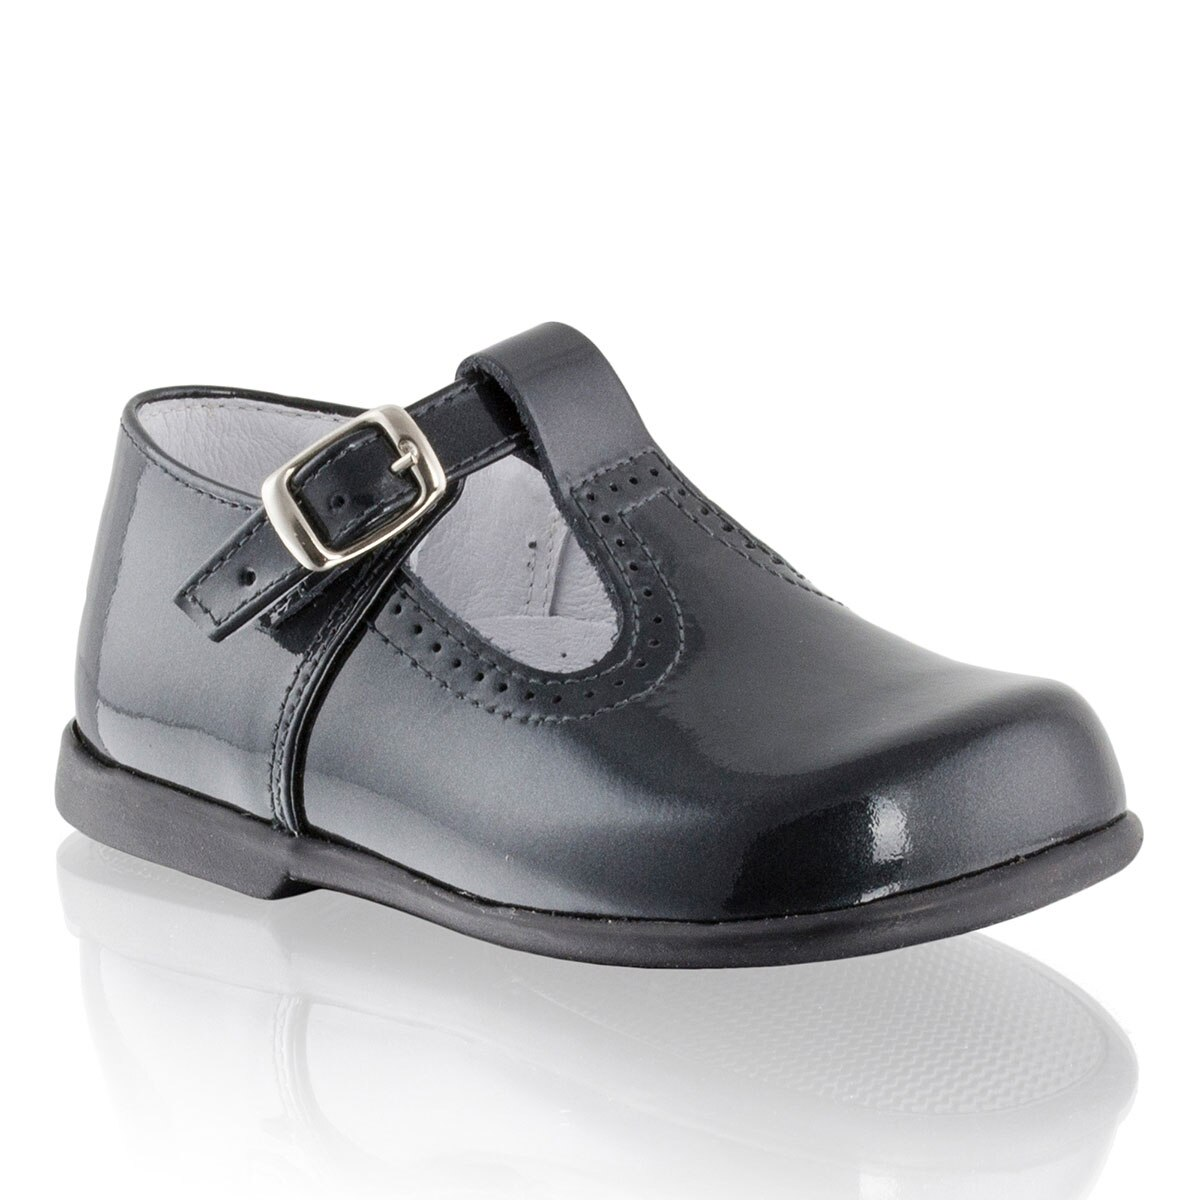 Russell and Bromley BUCKLE-T T-Bar Buckle Shoe